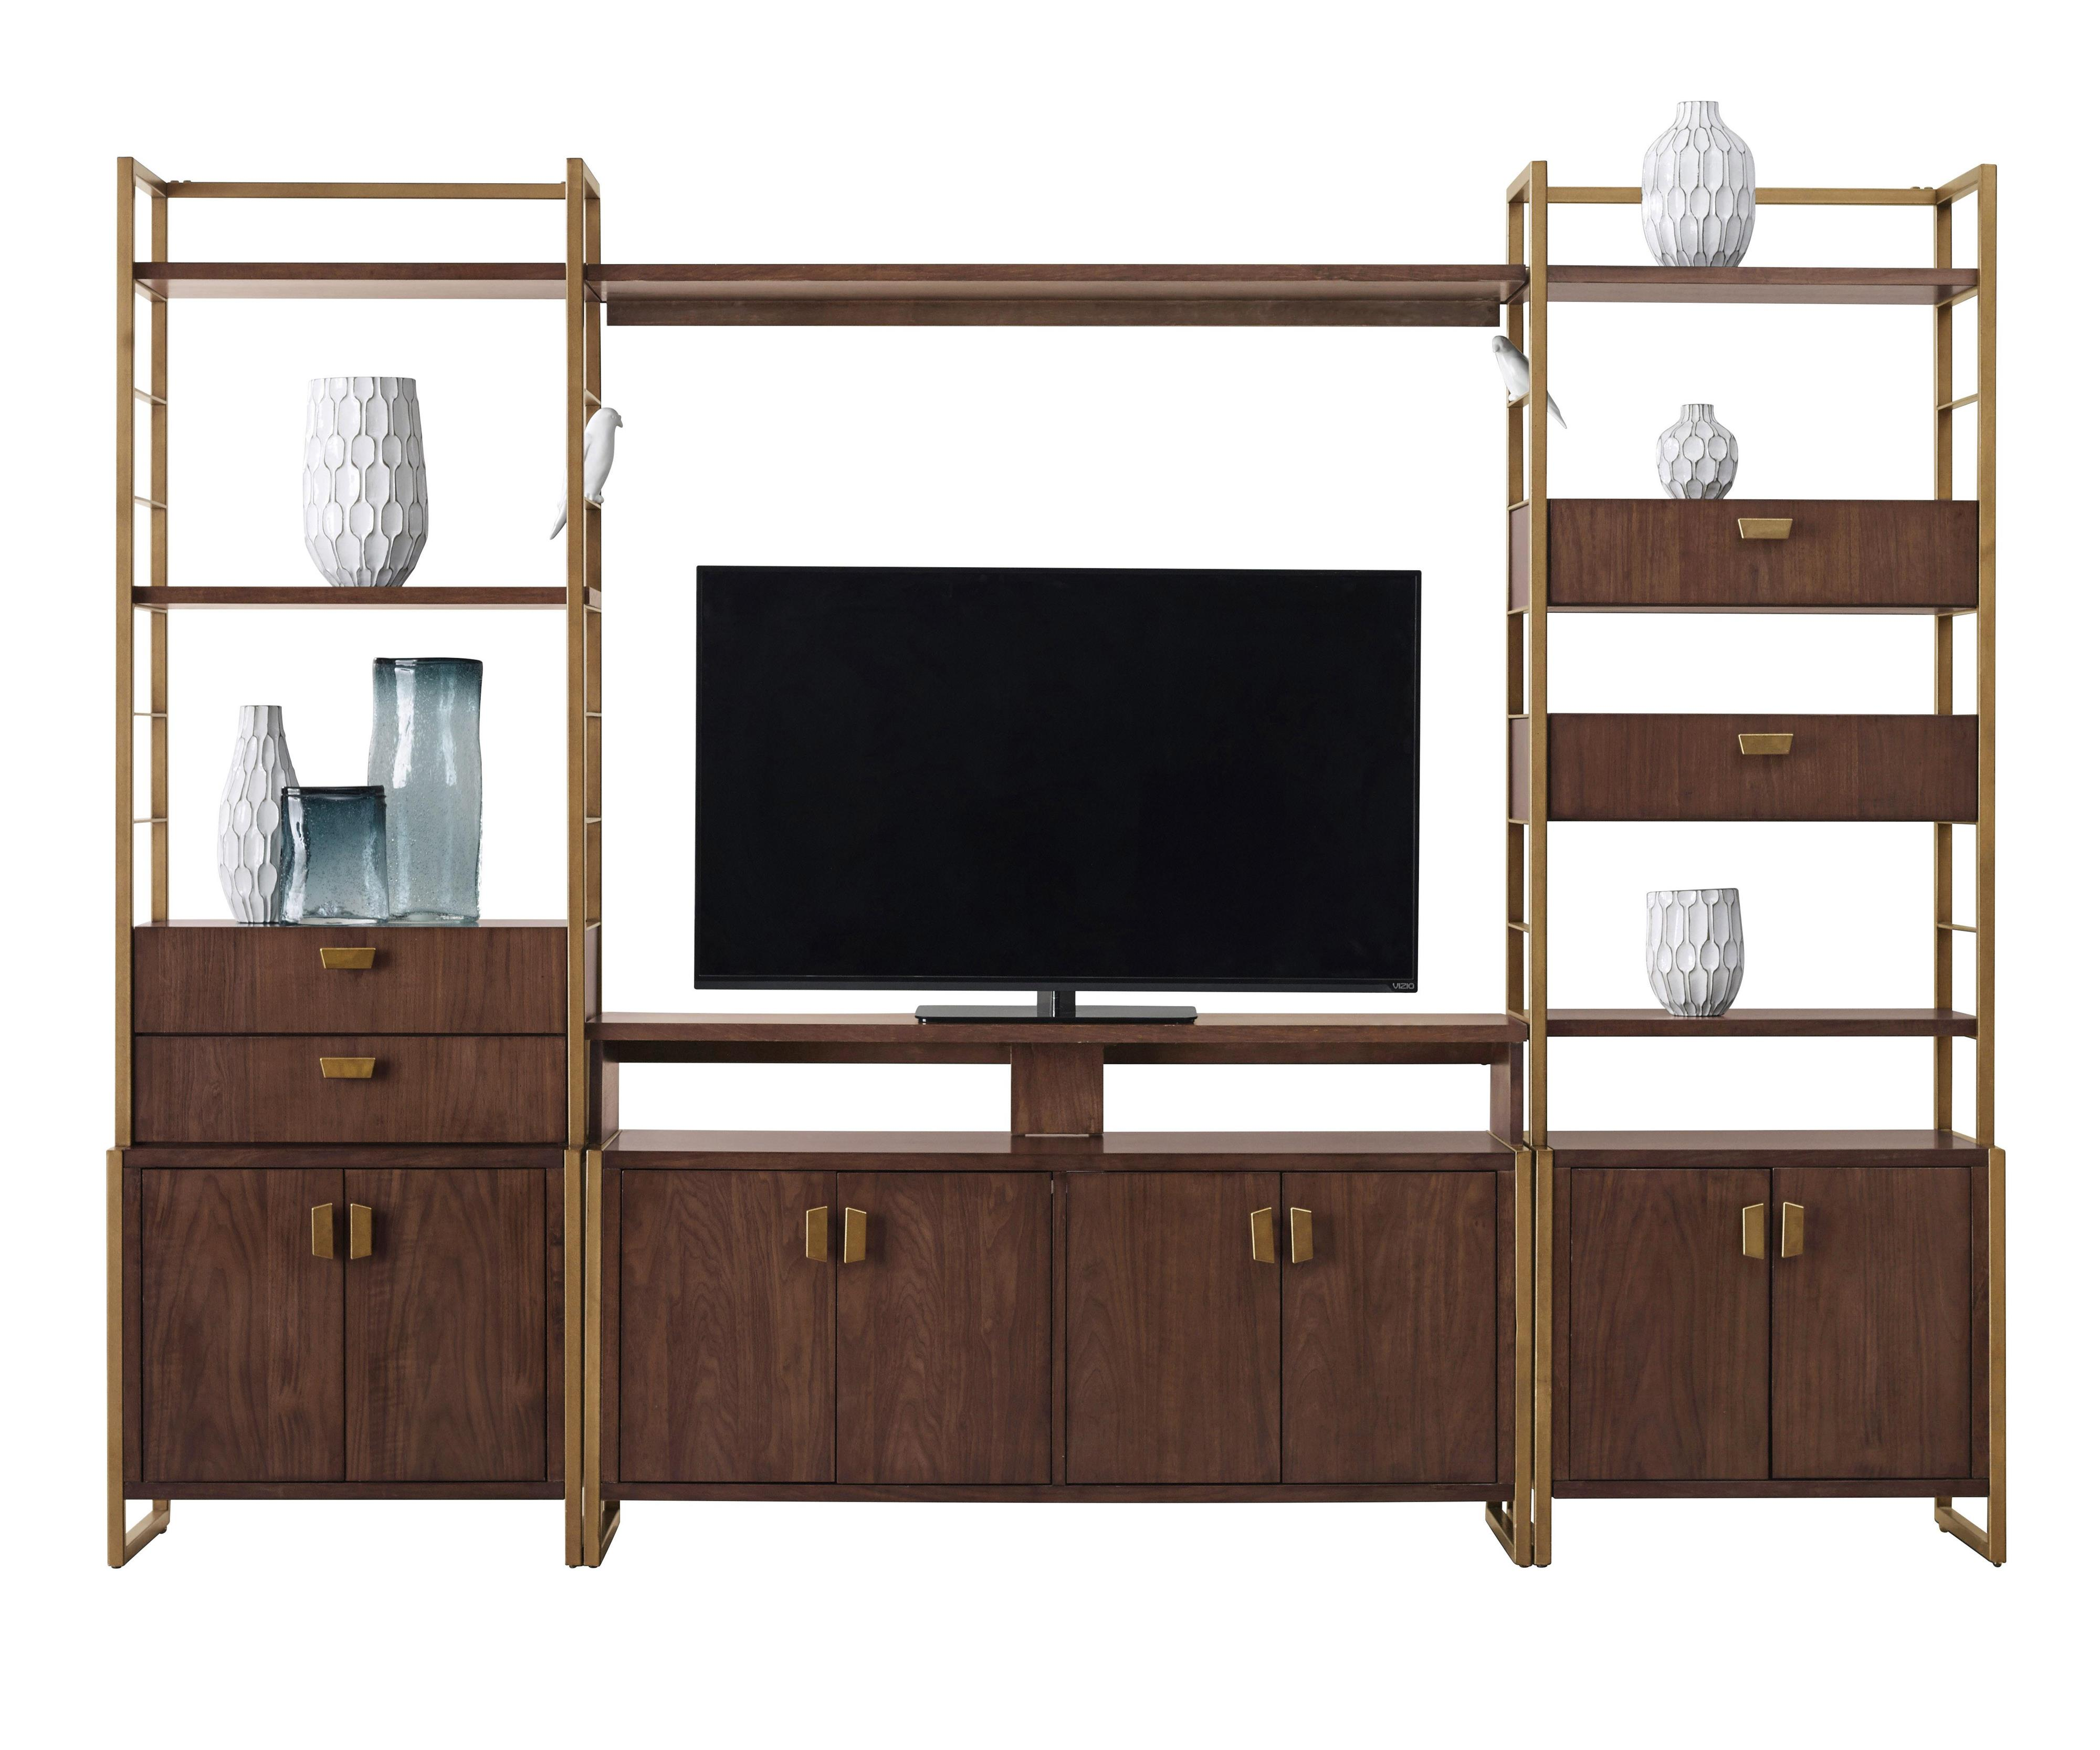 Pulaski Furniture Modern Harmony Entertainment Wall Console - Item Number: 403700+702+705